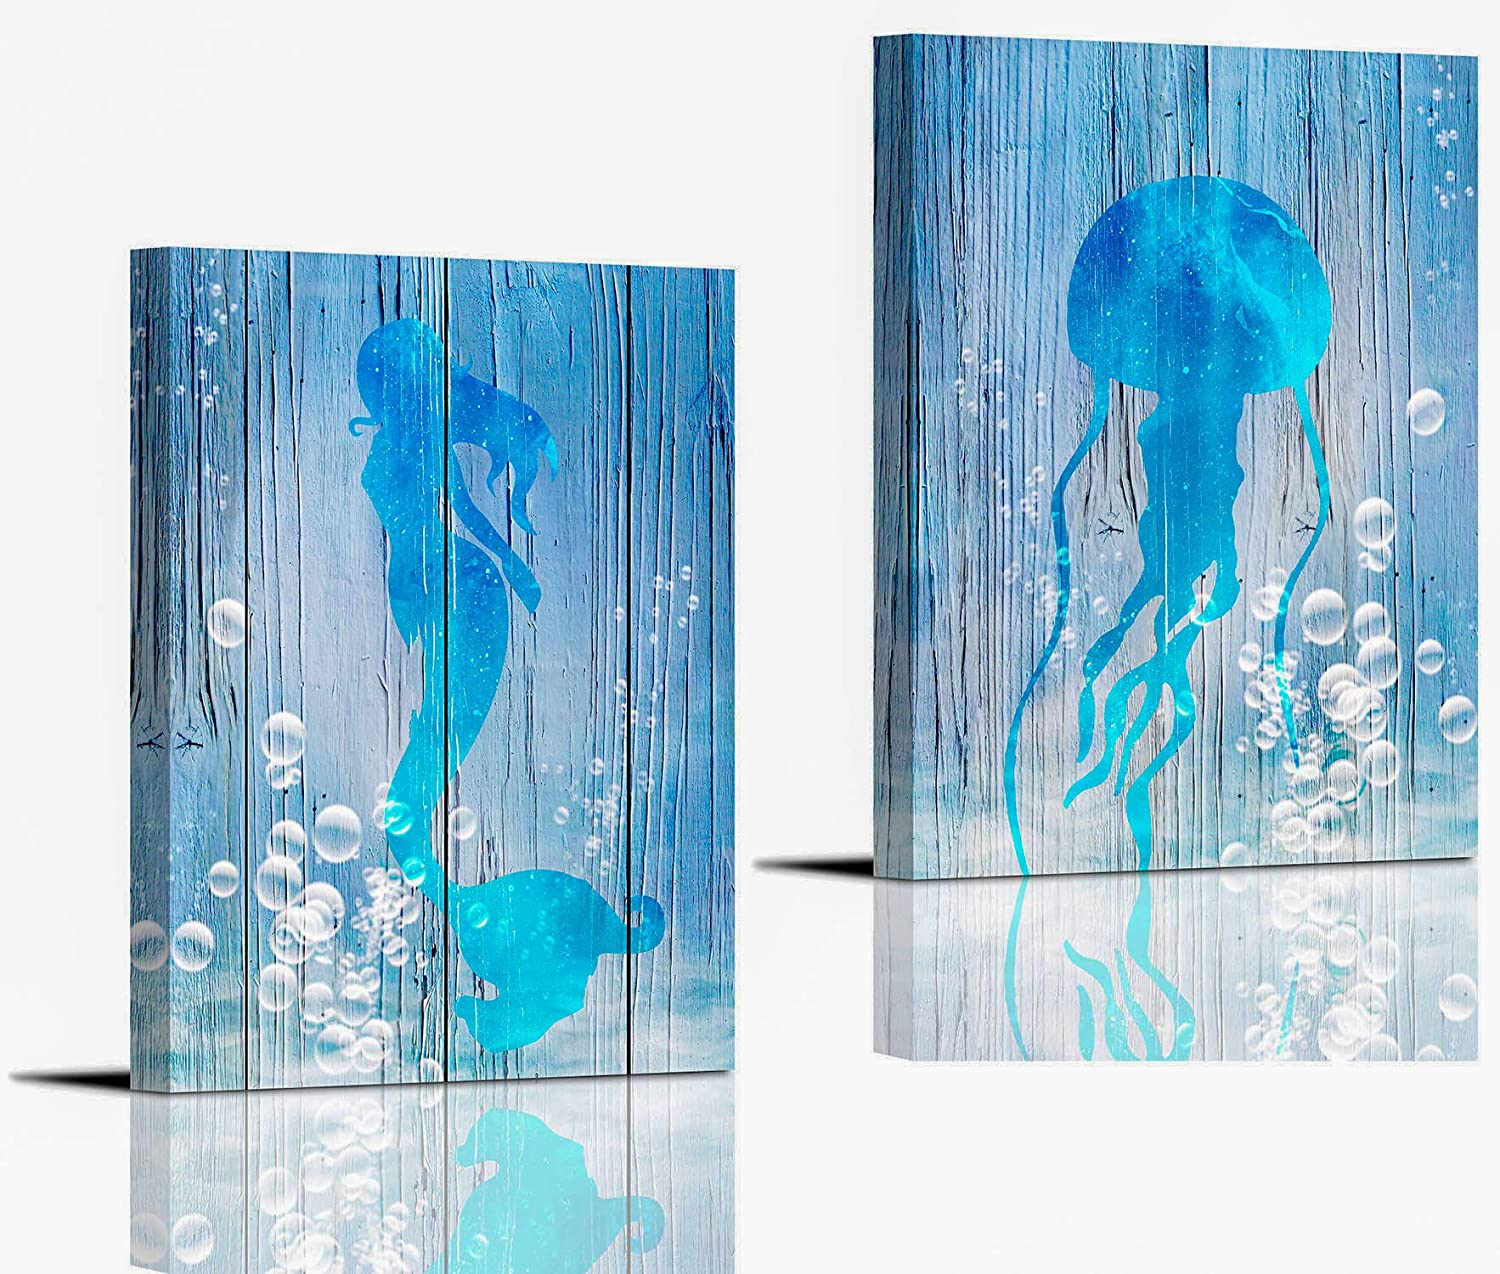 Mermaid and Jellyfish Wall Art for Bedroom Wall Decoration 12×16Inch Set of 2 Panels Dining Room Bathroom Sea Animal in Bubbles Water Wall Decor Framed Blue Sea Canvas Prints Home Decor Artwork